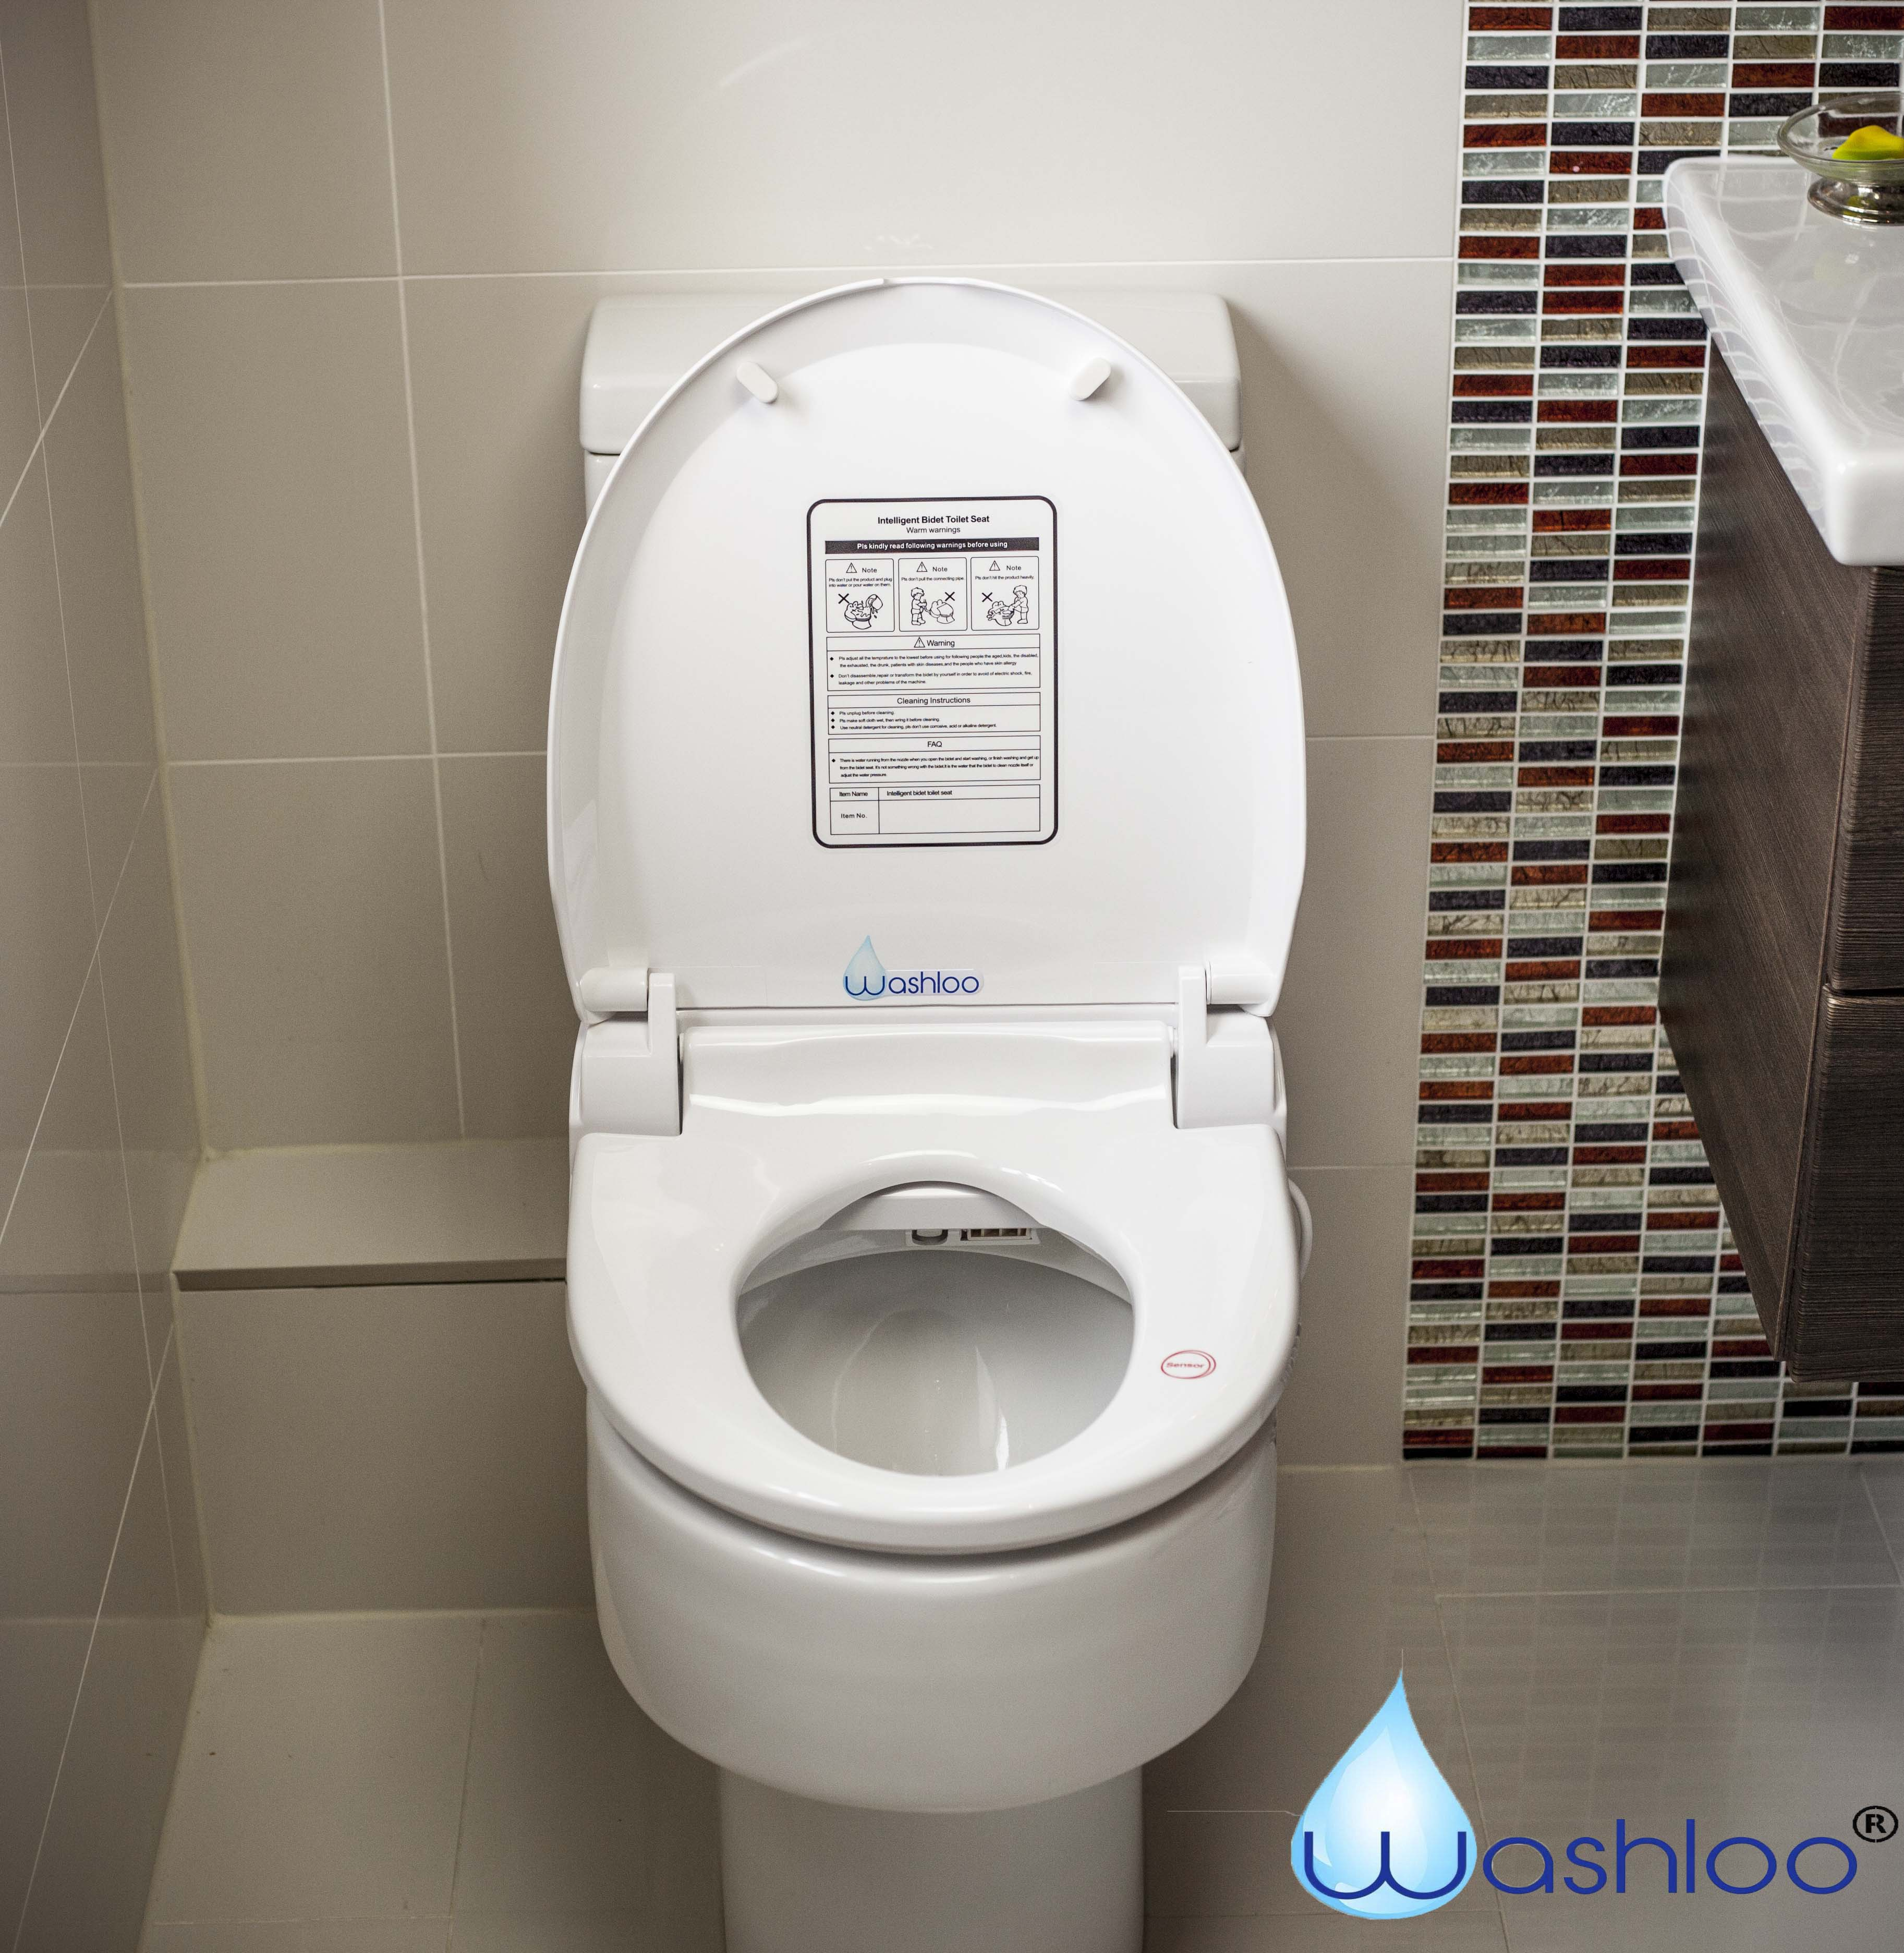 Washloo Classic Bidet Seat Fixed Control Only 425 Including Delivery